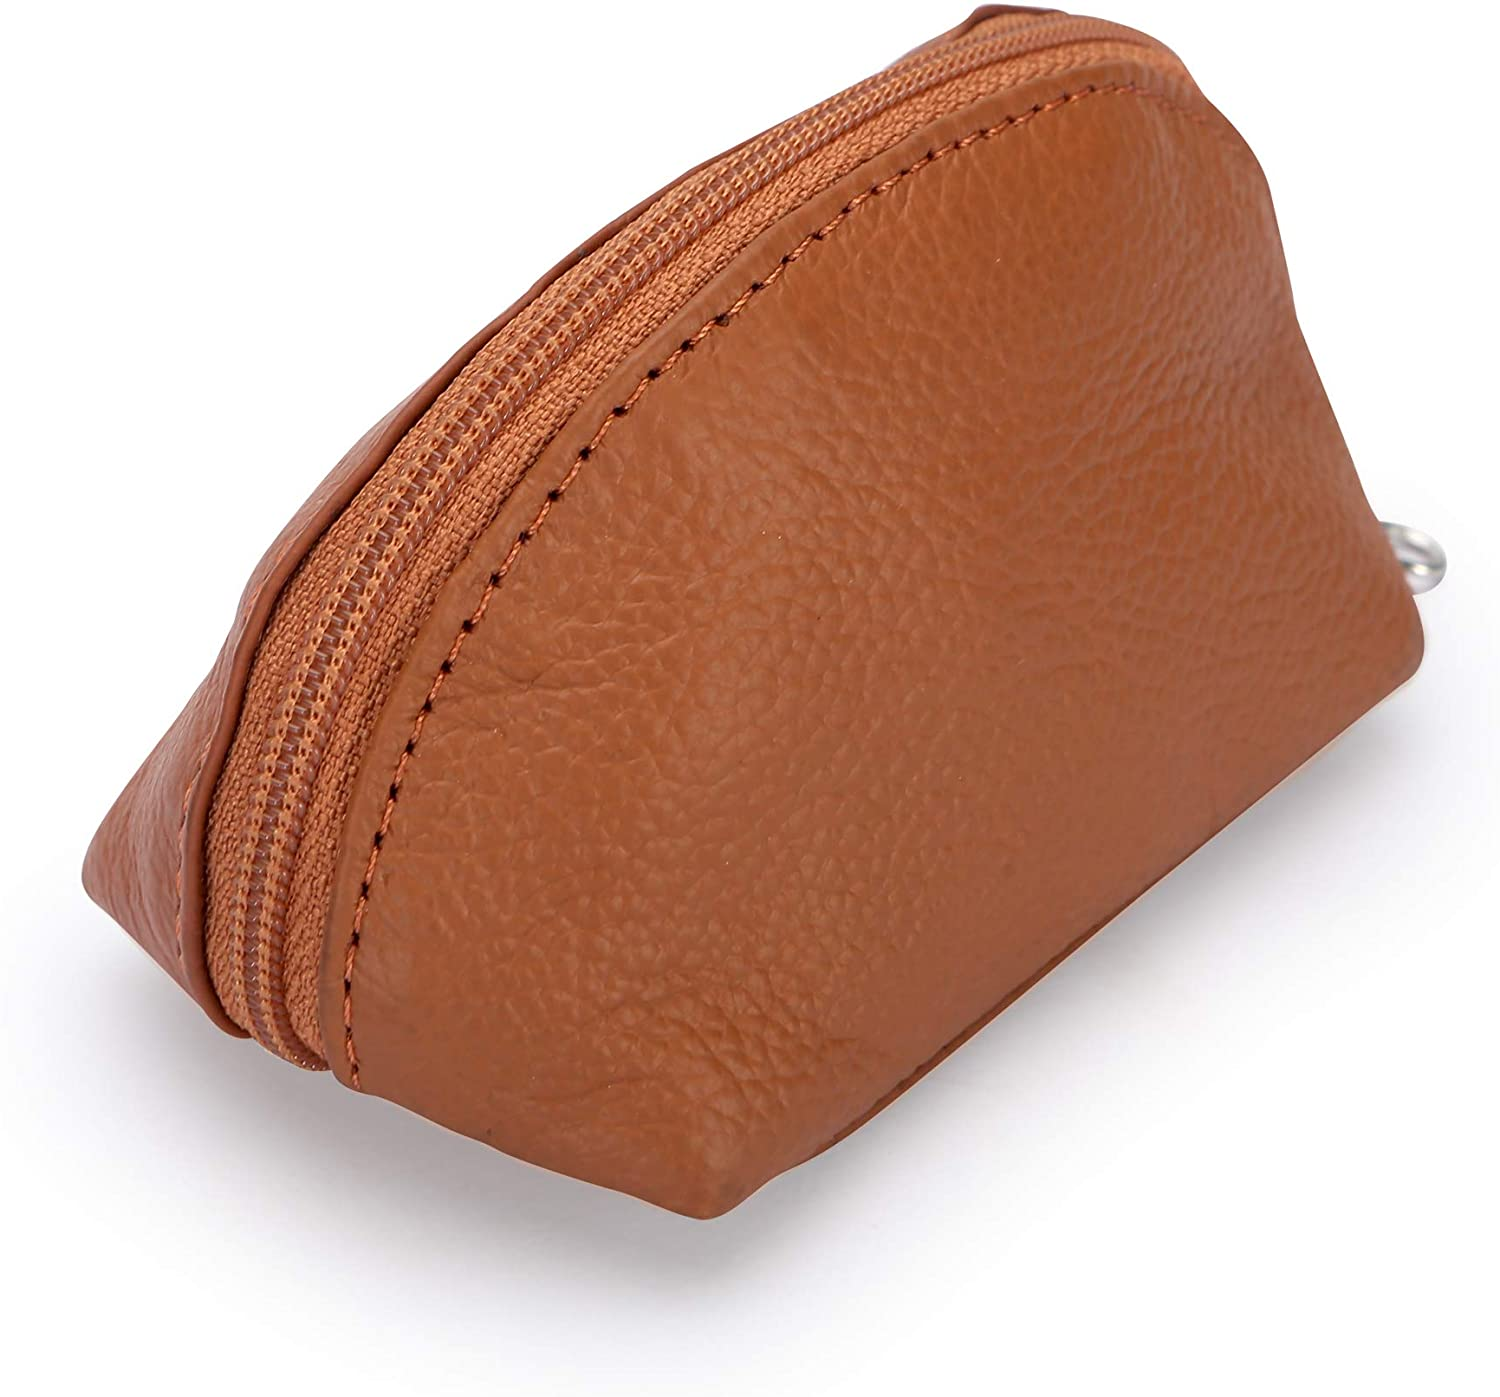 Leather mini coin purse tan color with key chain very soft beautiful finished color Tan Brown